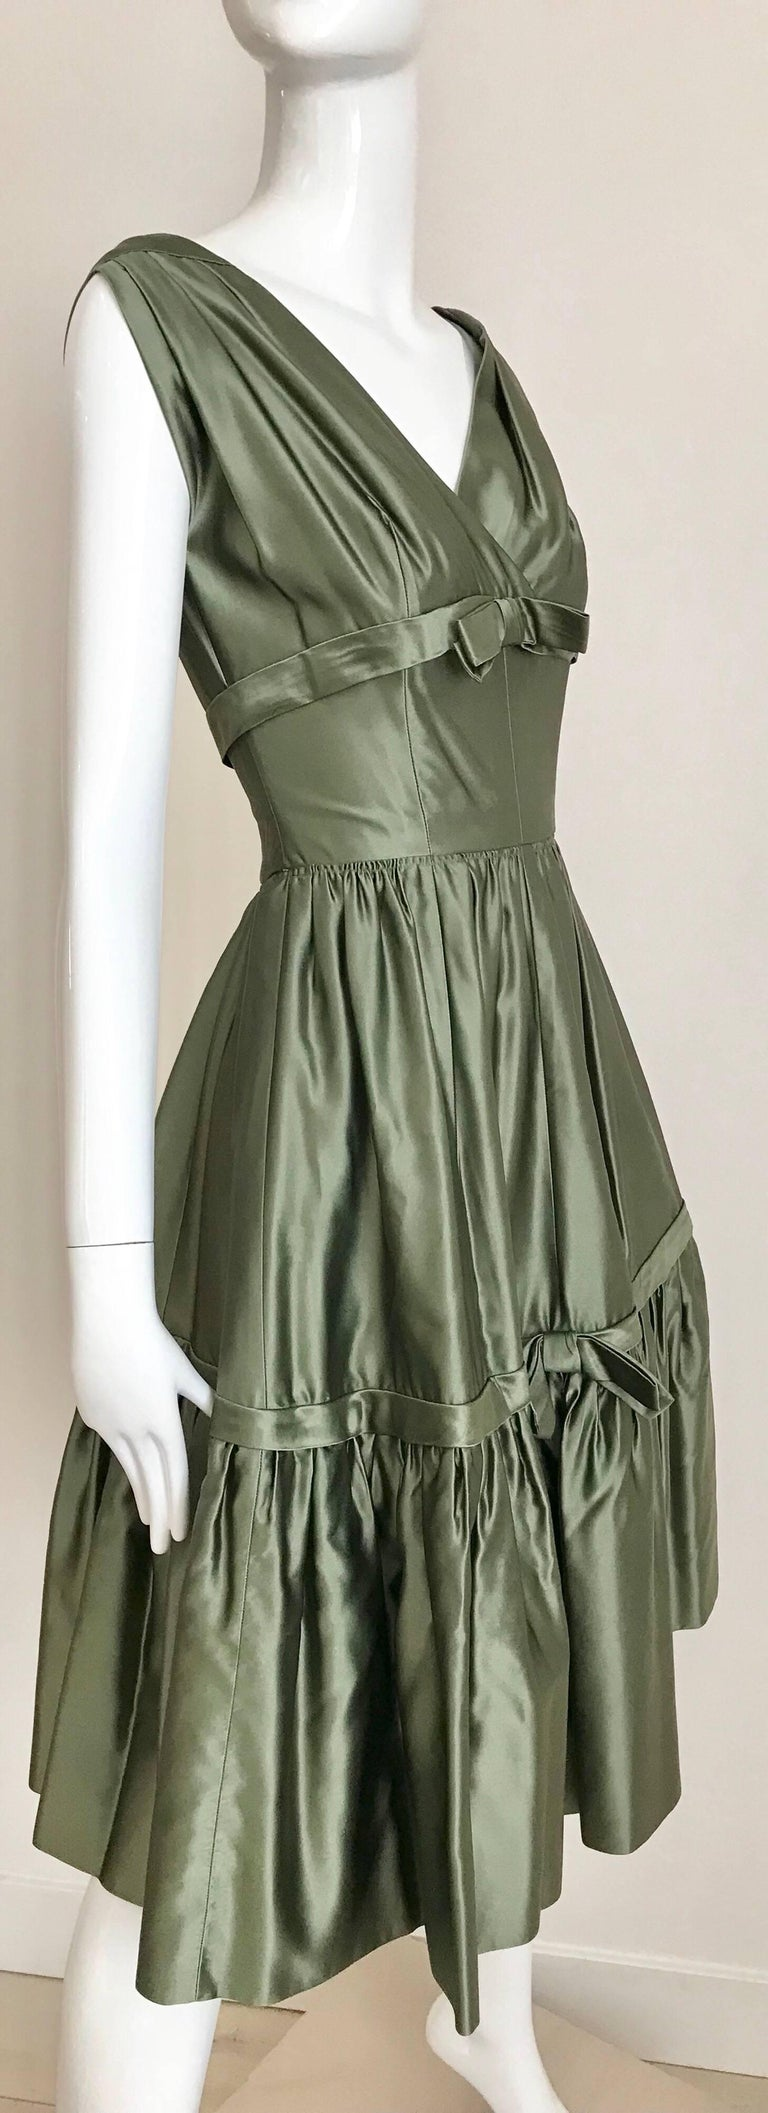 Christian Dior Green Silk Cocktail Dress, 1950s  For Sale 4